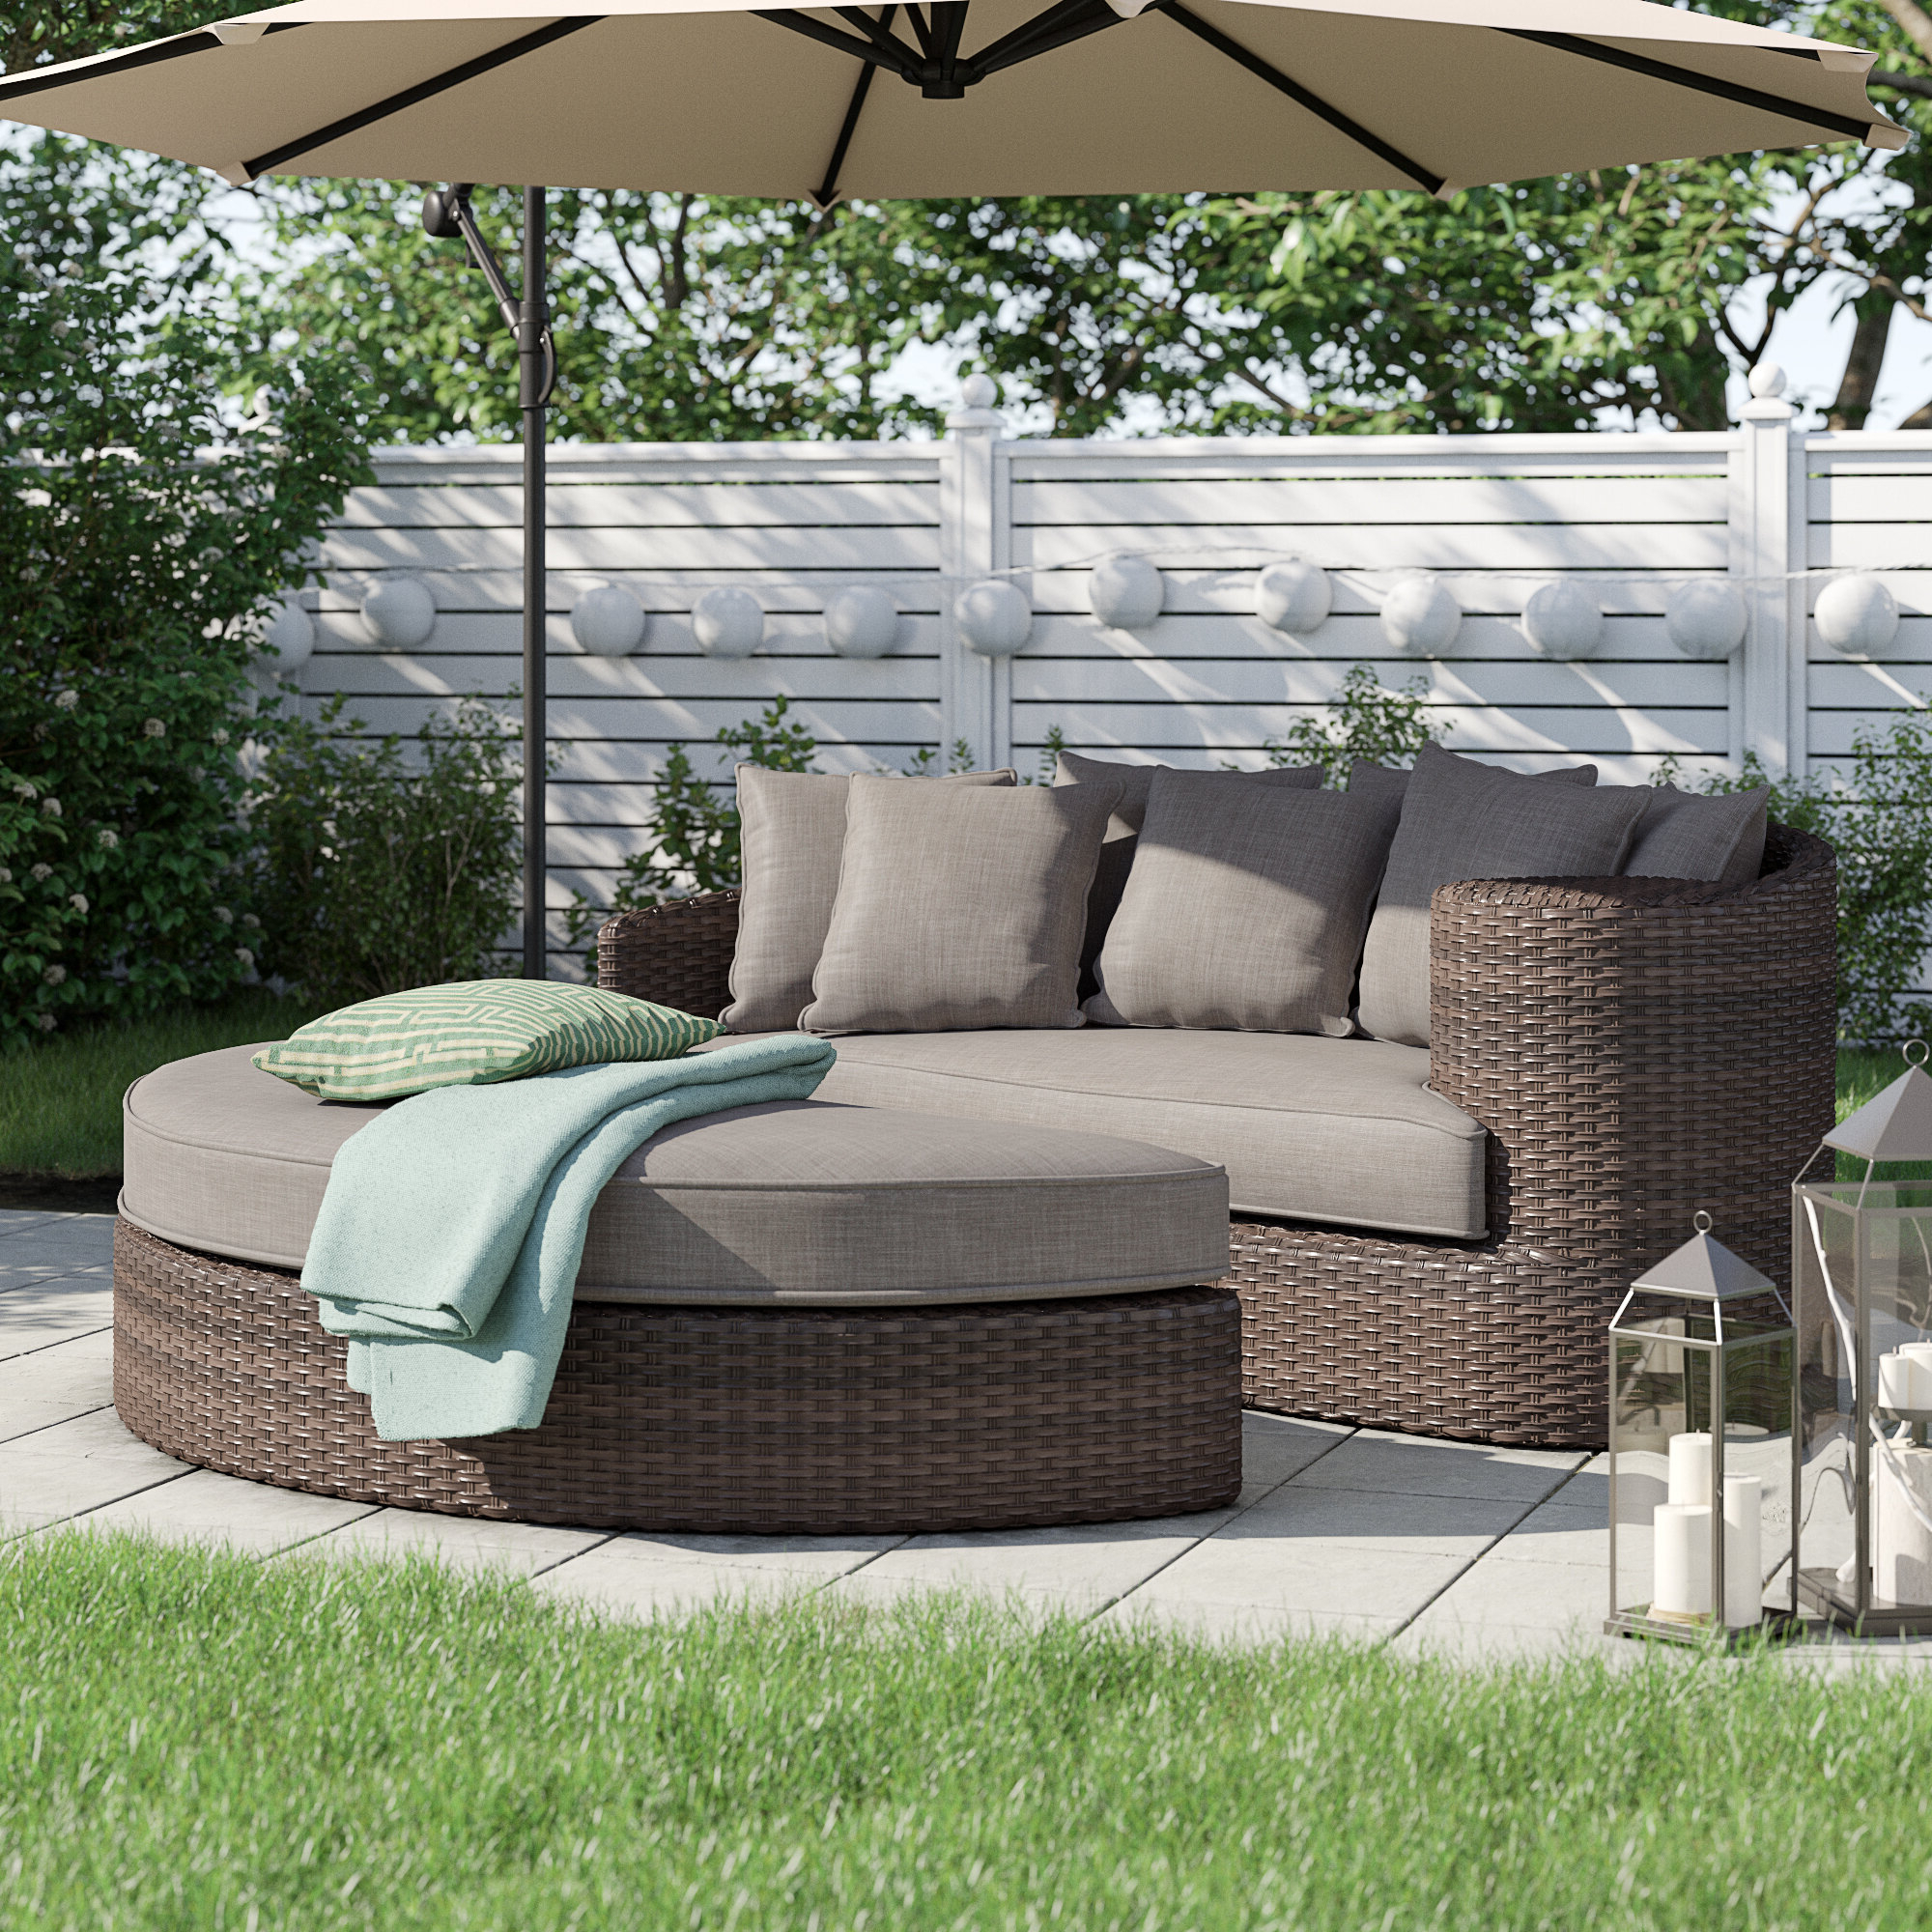 Whyte Contemporary Patio Daybed With Cushions For 2019 Naperville Patio Daybeds With Cushion (View 12 of 25)